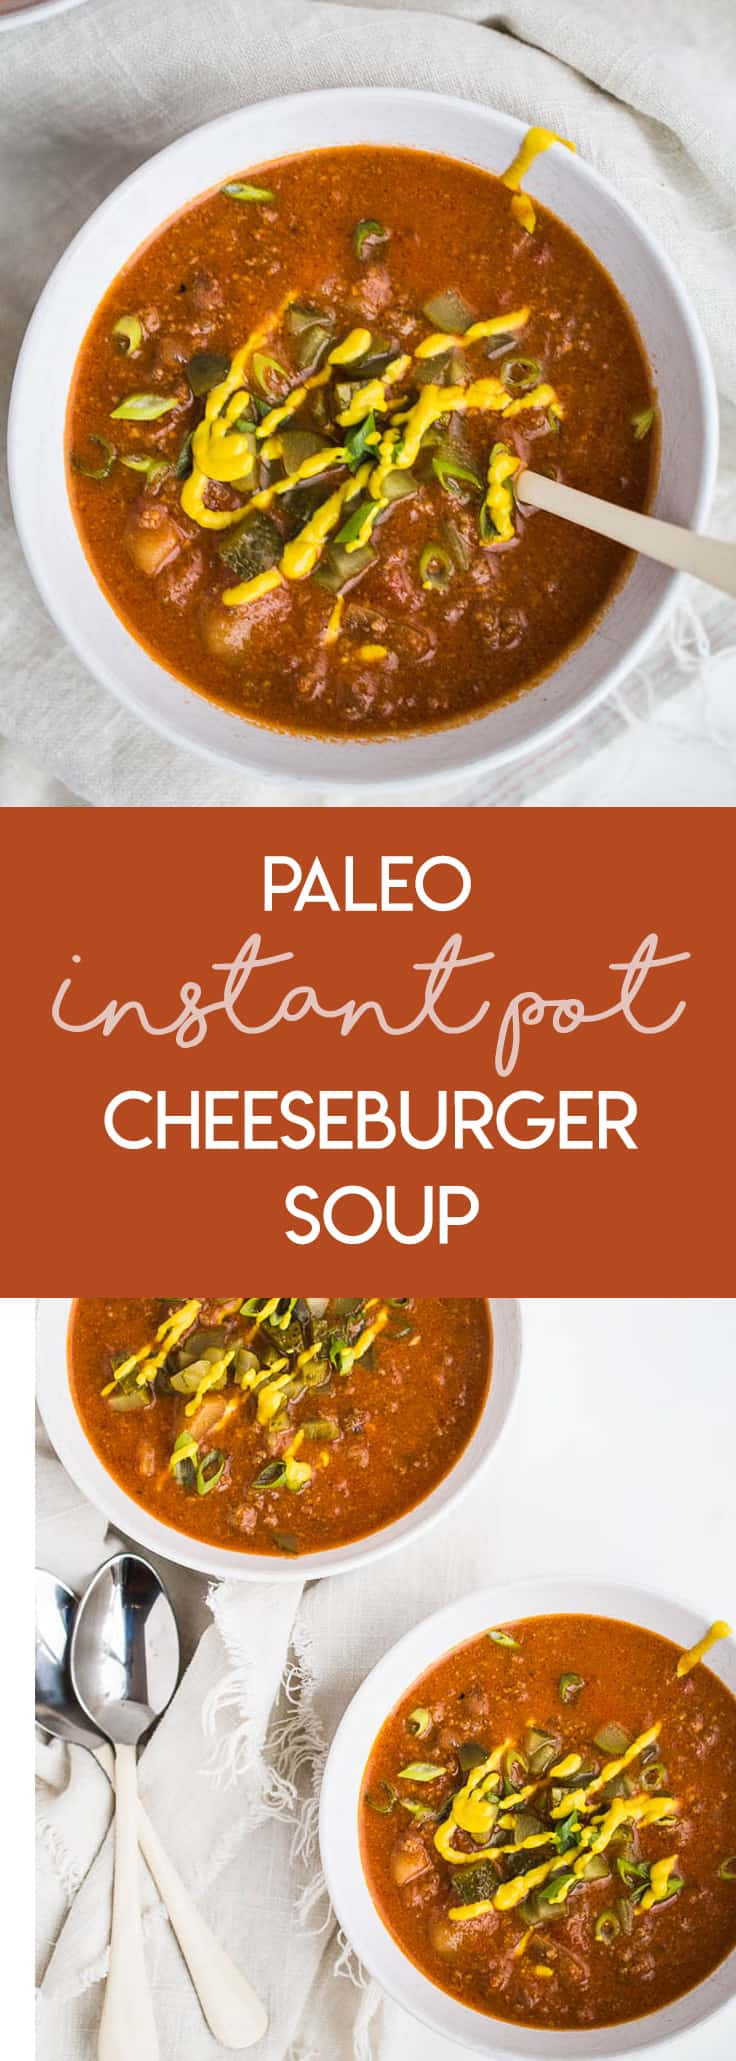 Paleo Instant Pot Cheeseburger Soup | This soup has all of the best flavors from a classic cheeseburger and freezes well! It's also paleo and easily made Whole30 compliant. | Instant Pot recipes | ground beef recipes | soup recipes | perrysplate.com